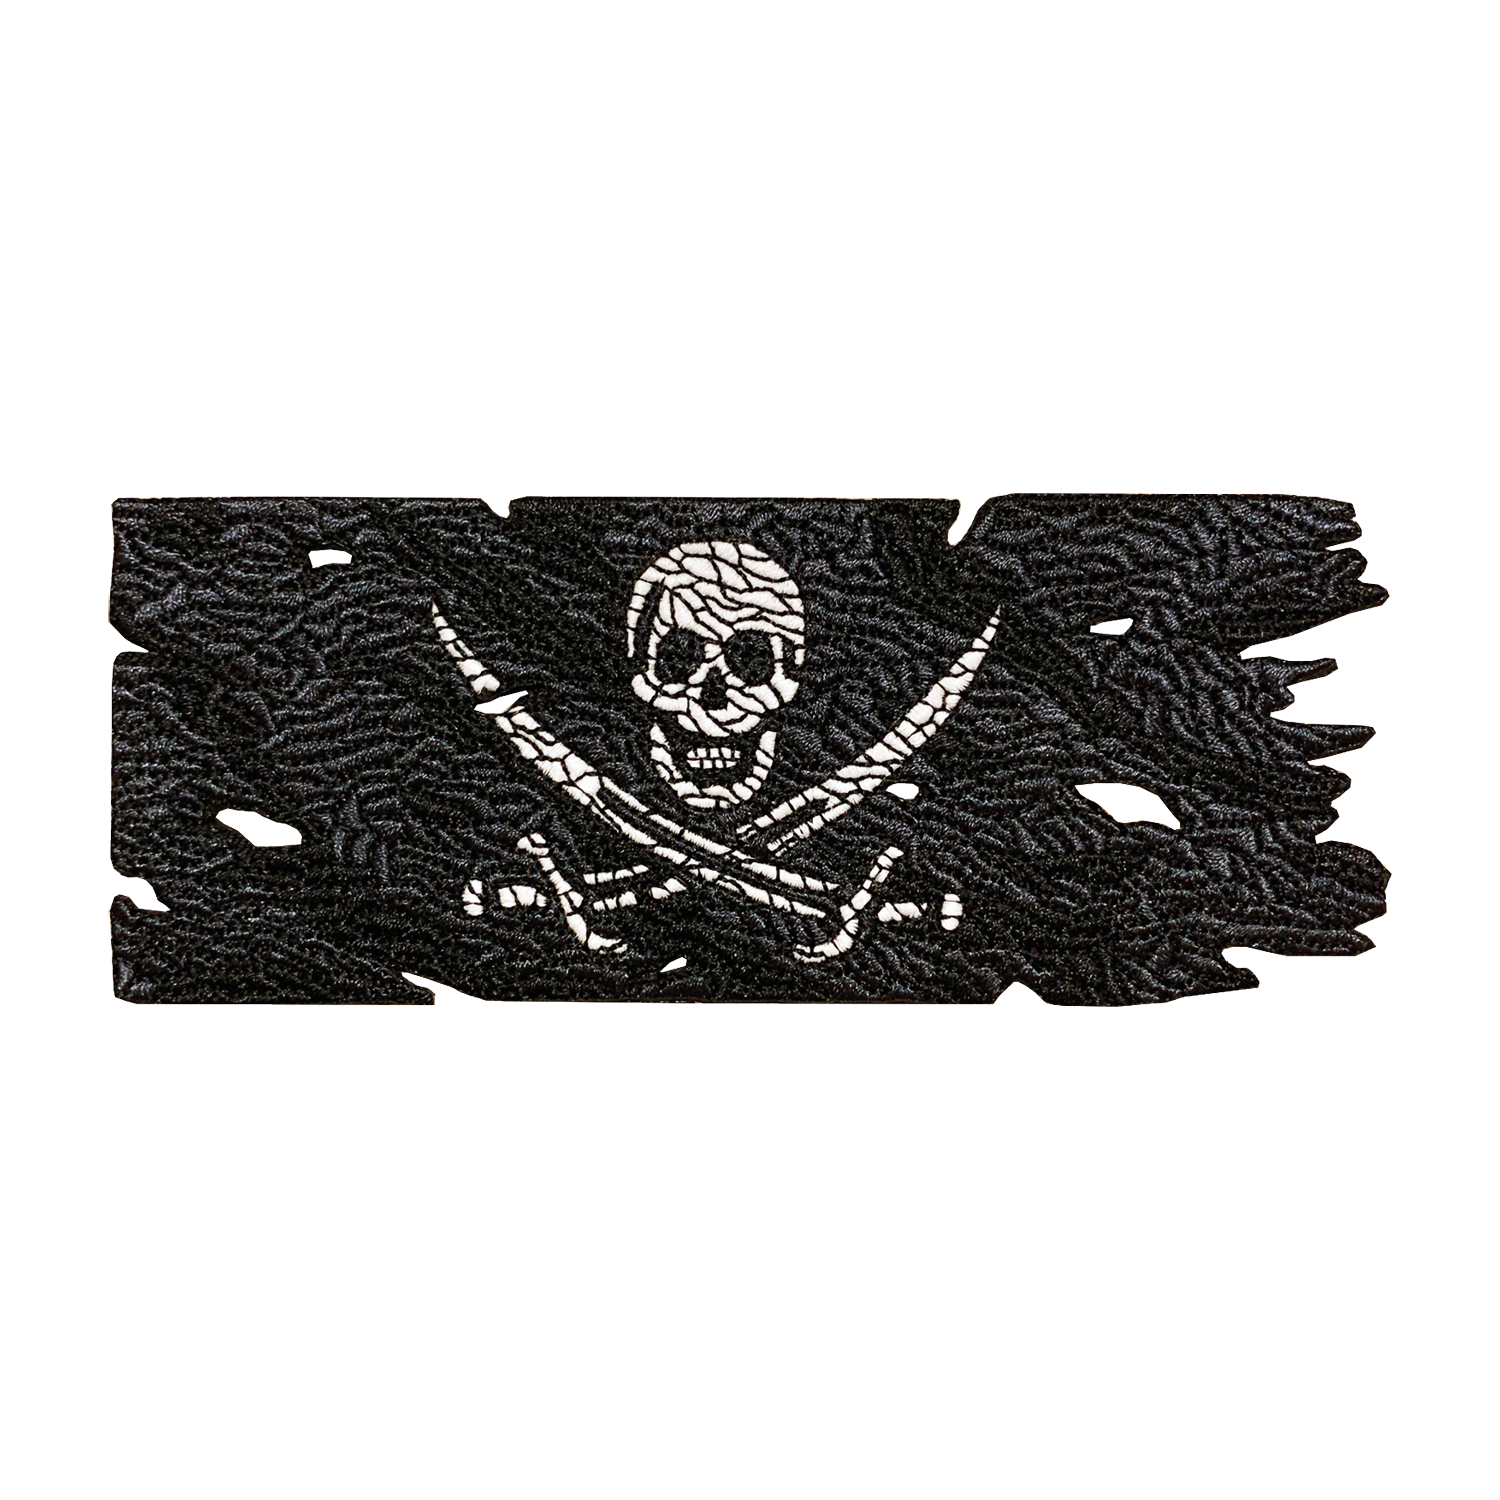 Calico Jack Pirate Flag [v1] Patch